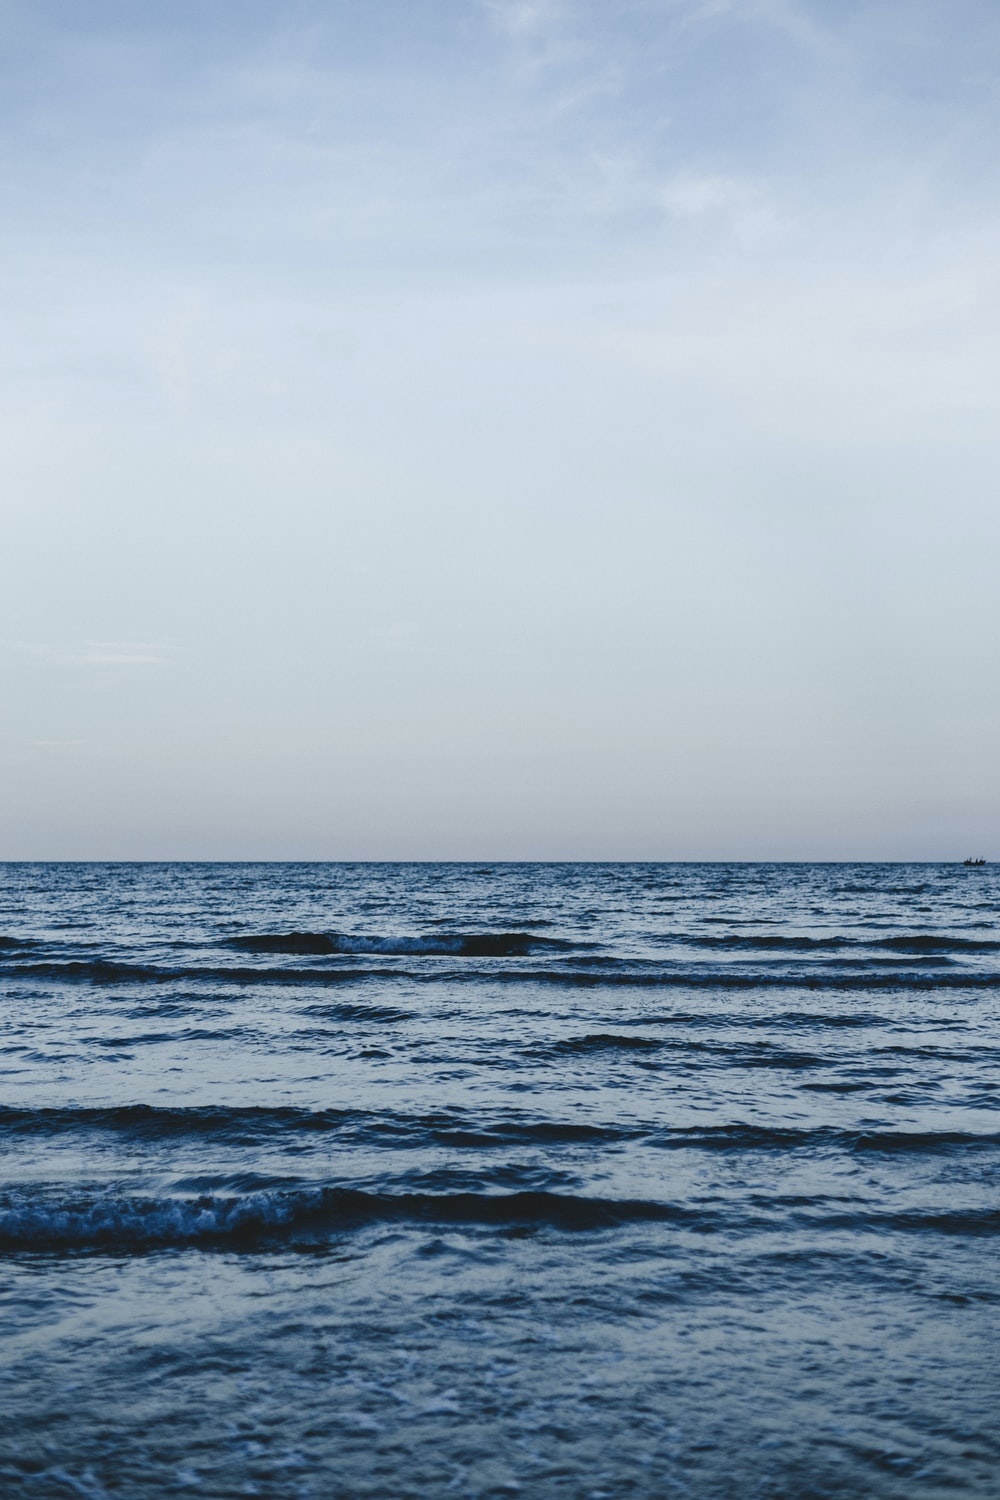 calm sea under clear blue sky during daytime